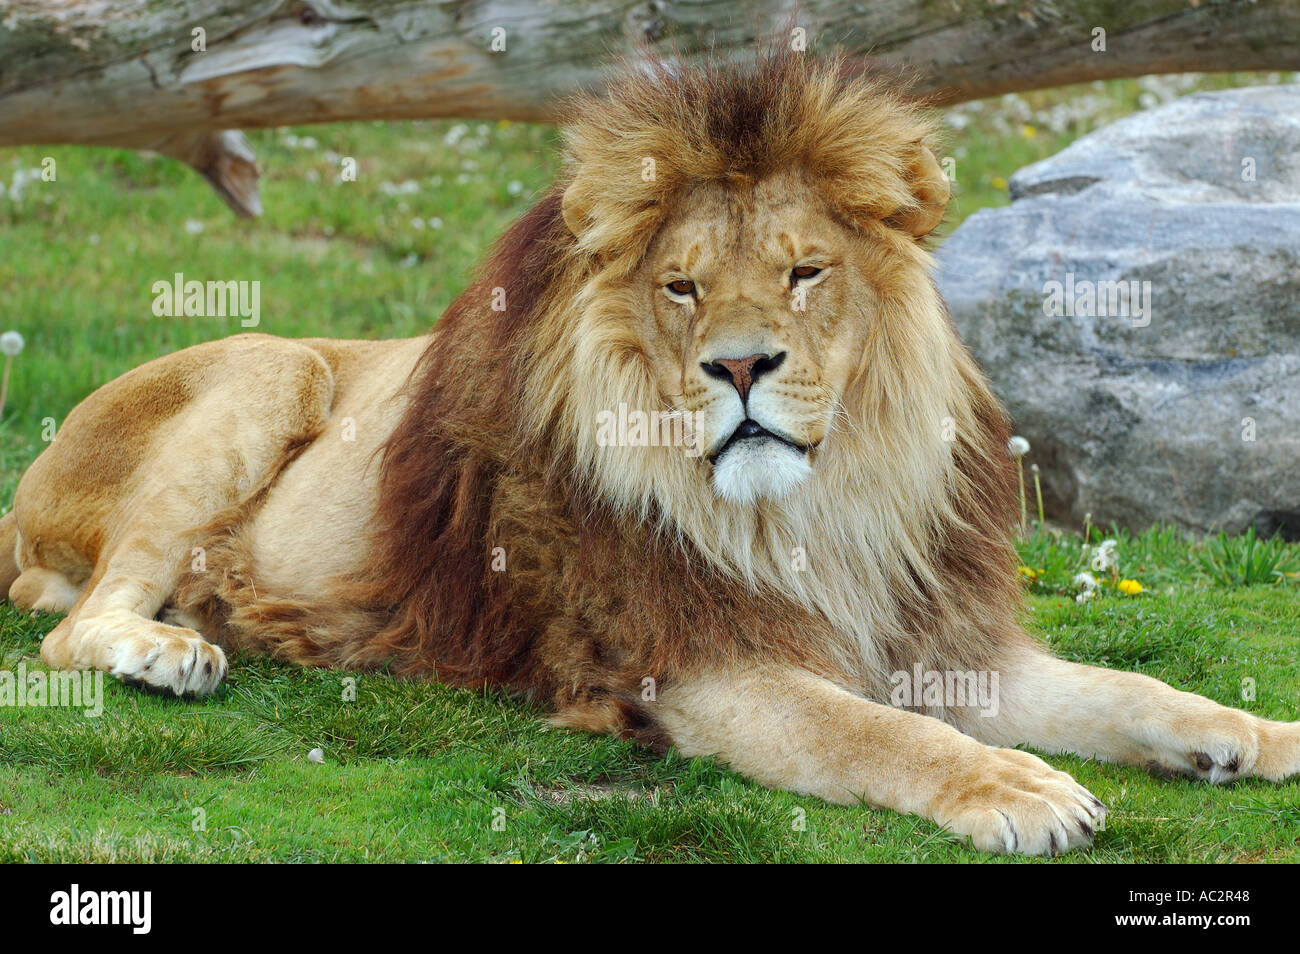 Male African Lion lying on green grass in spring - Stock Image